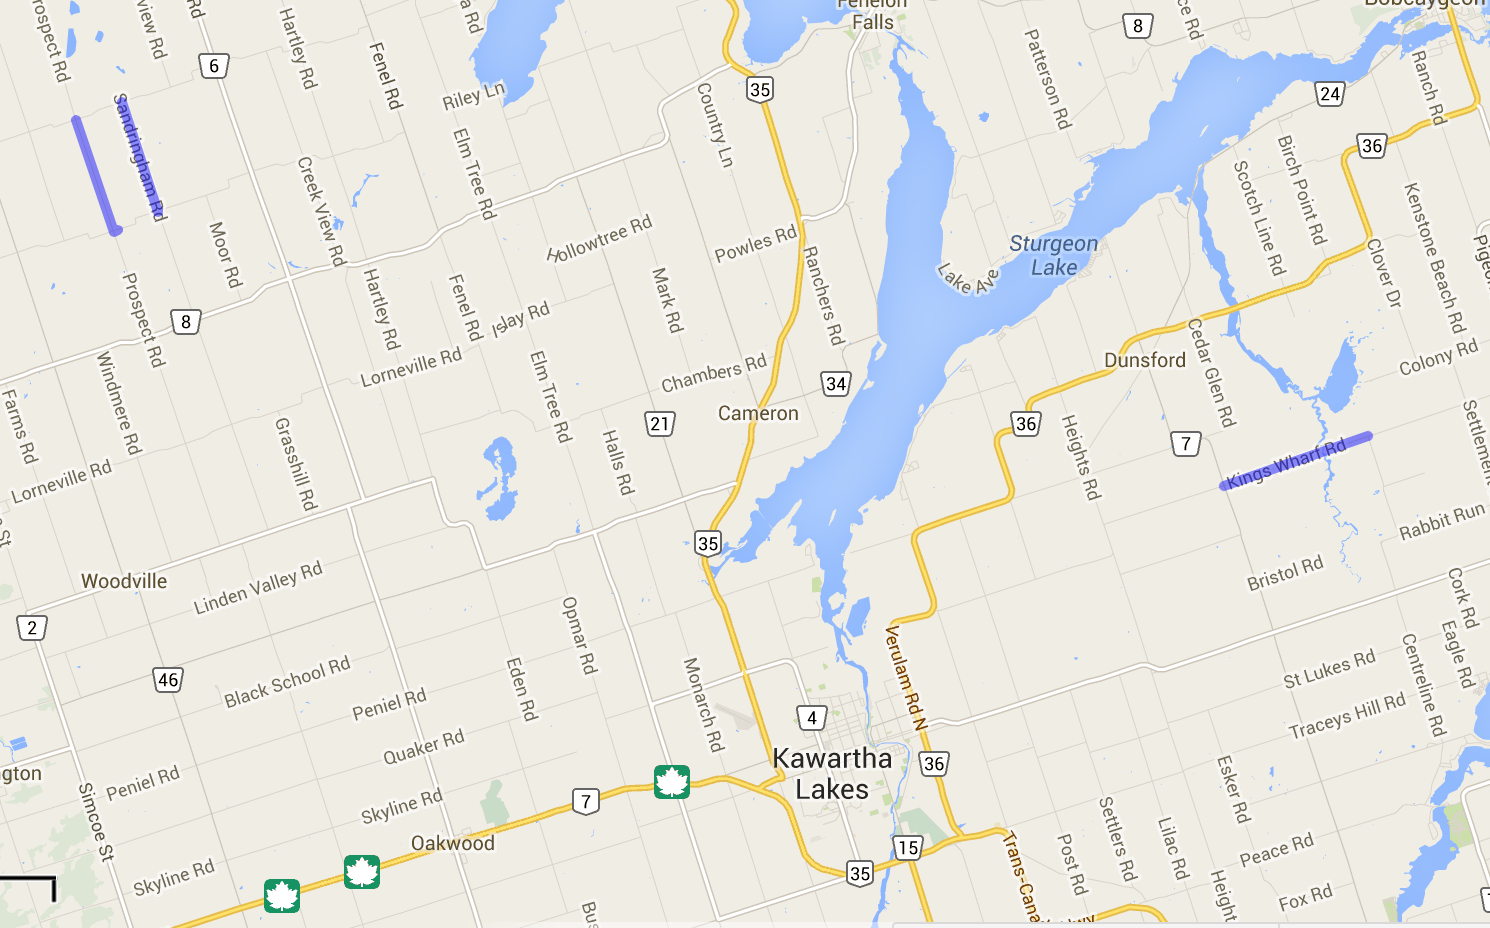 3 Kawartha Lakes Flooded Roads Closed indicated by blue lines on portions of roads on map of Kawartha Lakes.